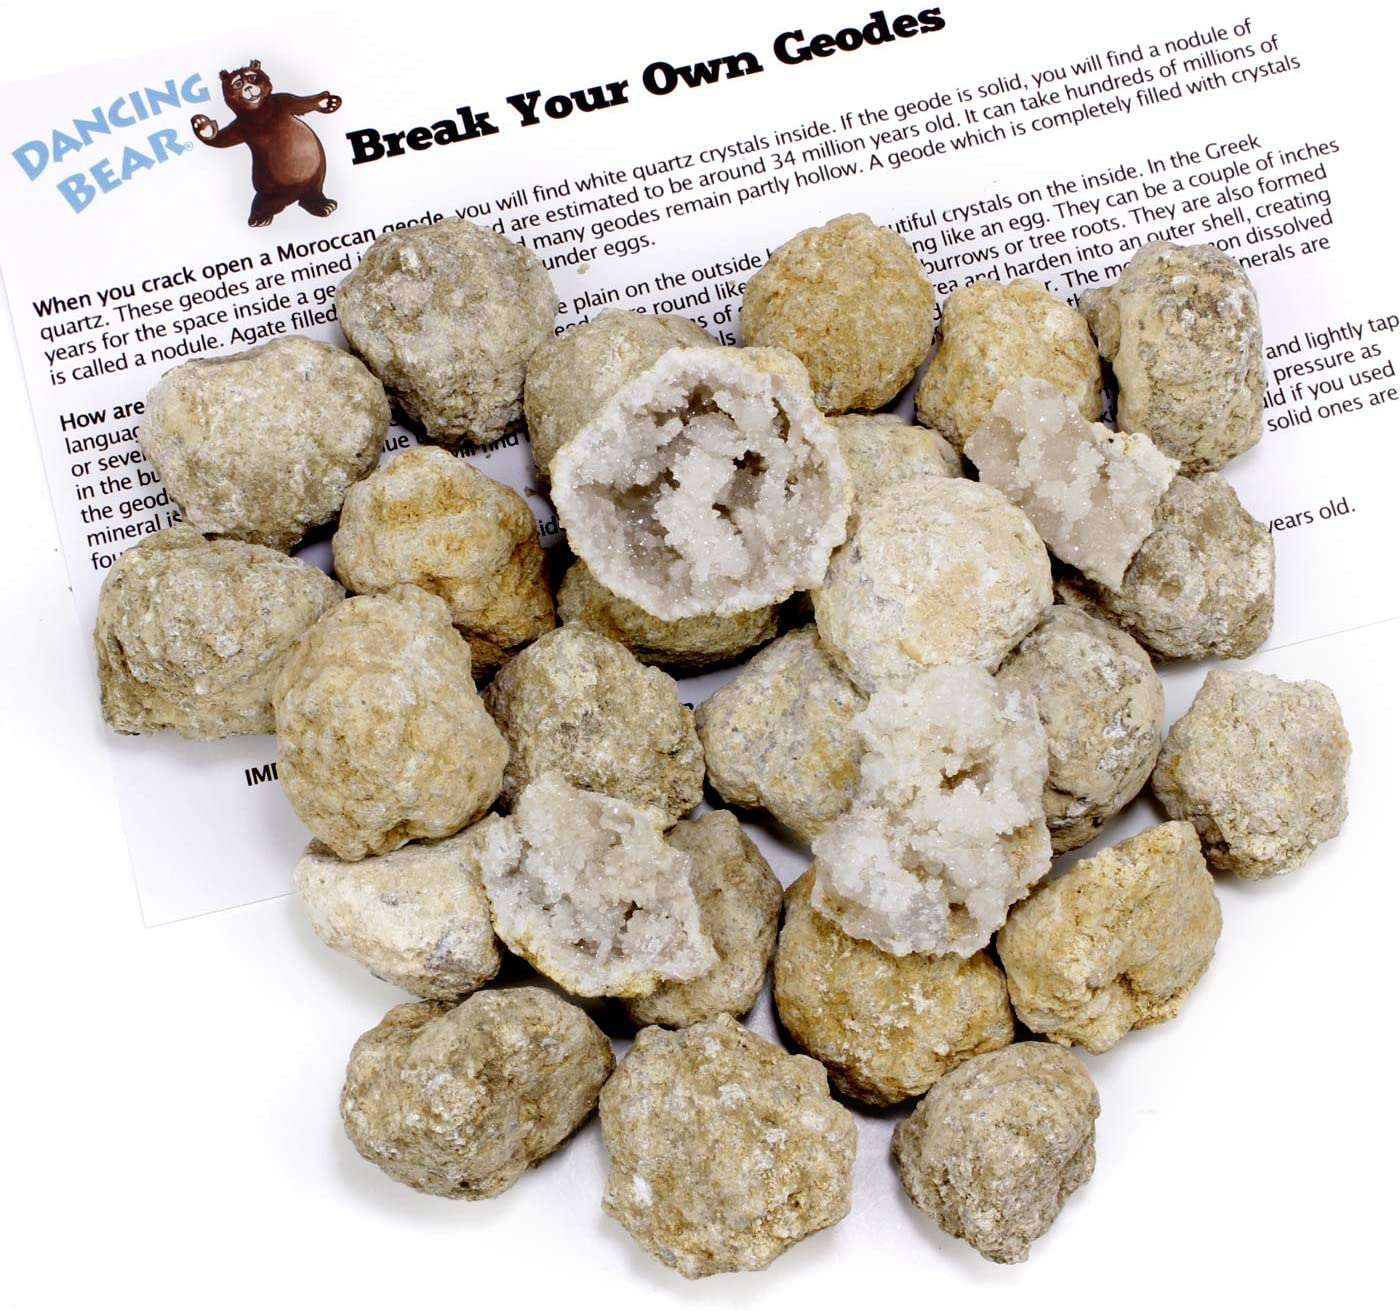 "Dancing Bear 25 Break Your Own Geodes, 90% Hollow-Small ( 1-1.5"") Crack Open & Discover Amazing Surprise Crystals Inside! Educational Info and Instructions Included, Fun Party Favors & Prizes, Brand"